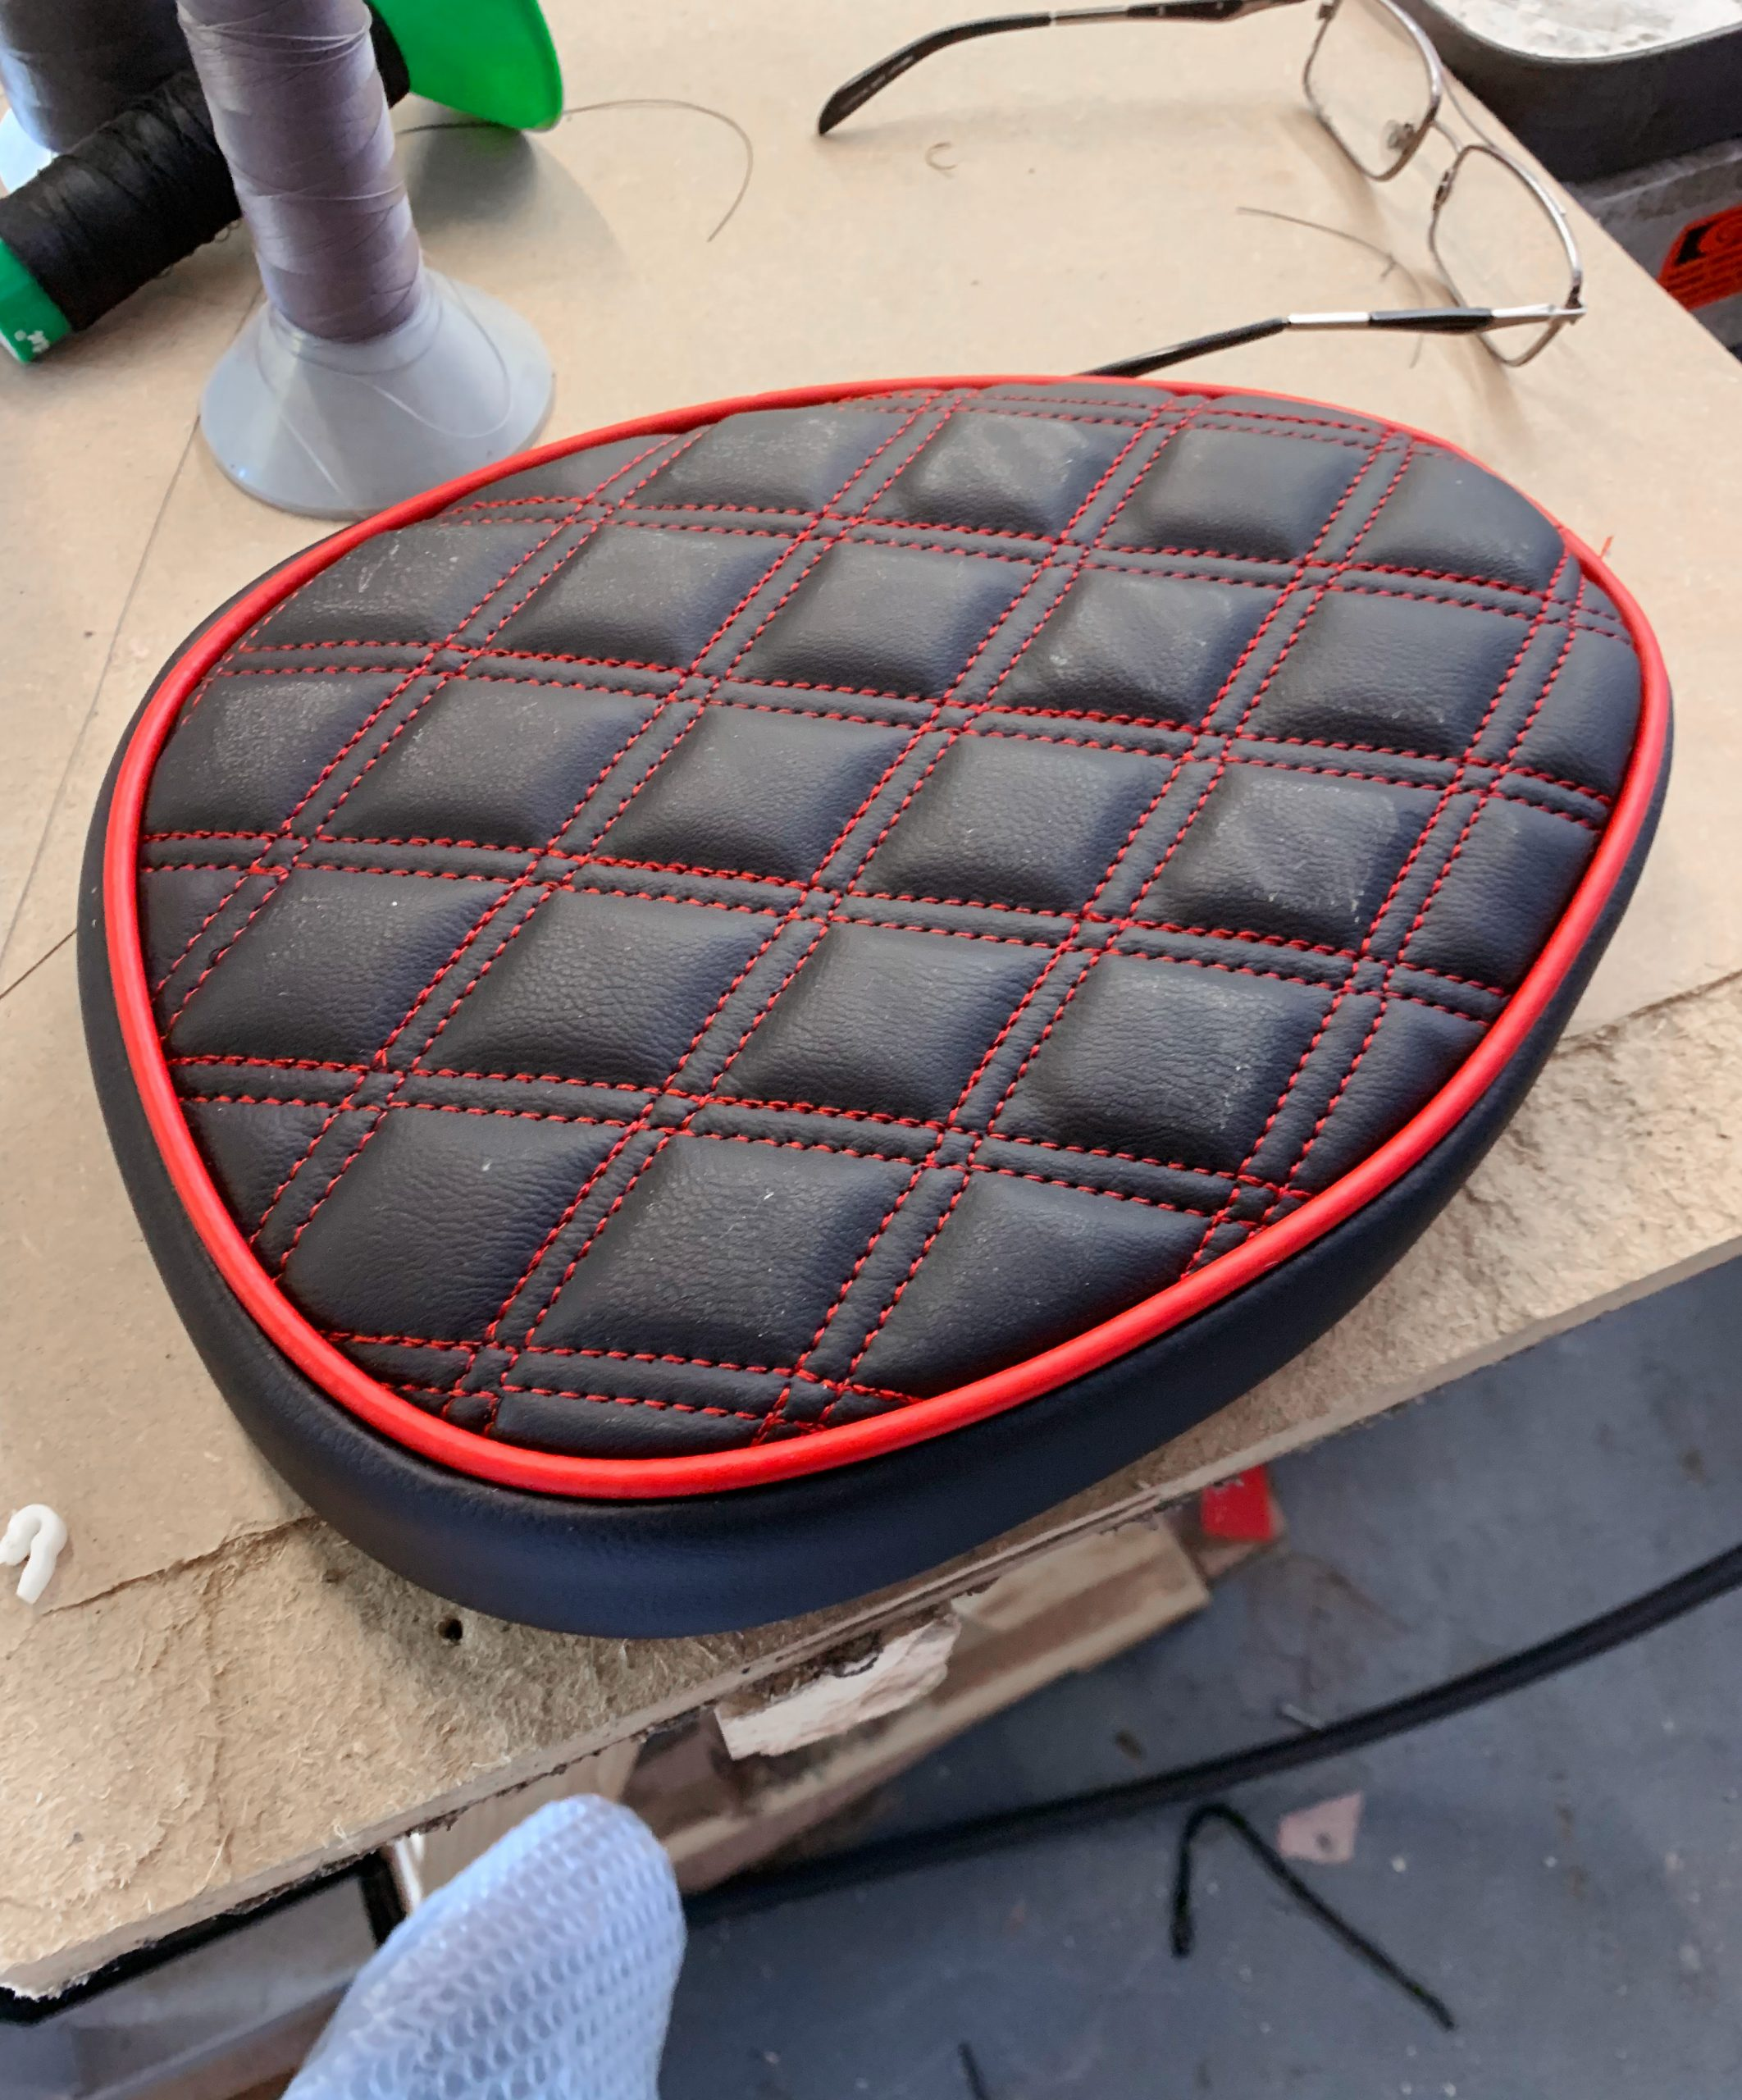 Black+motorcycle+seat+with+red+diamond+stitching+and+piping